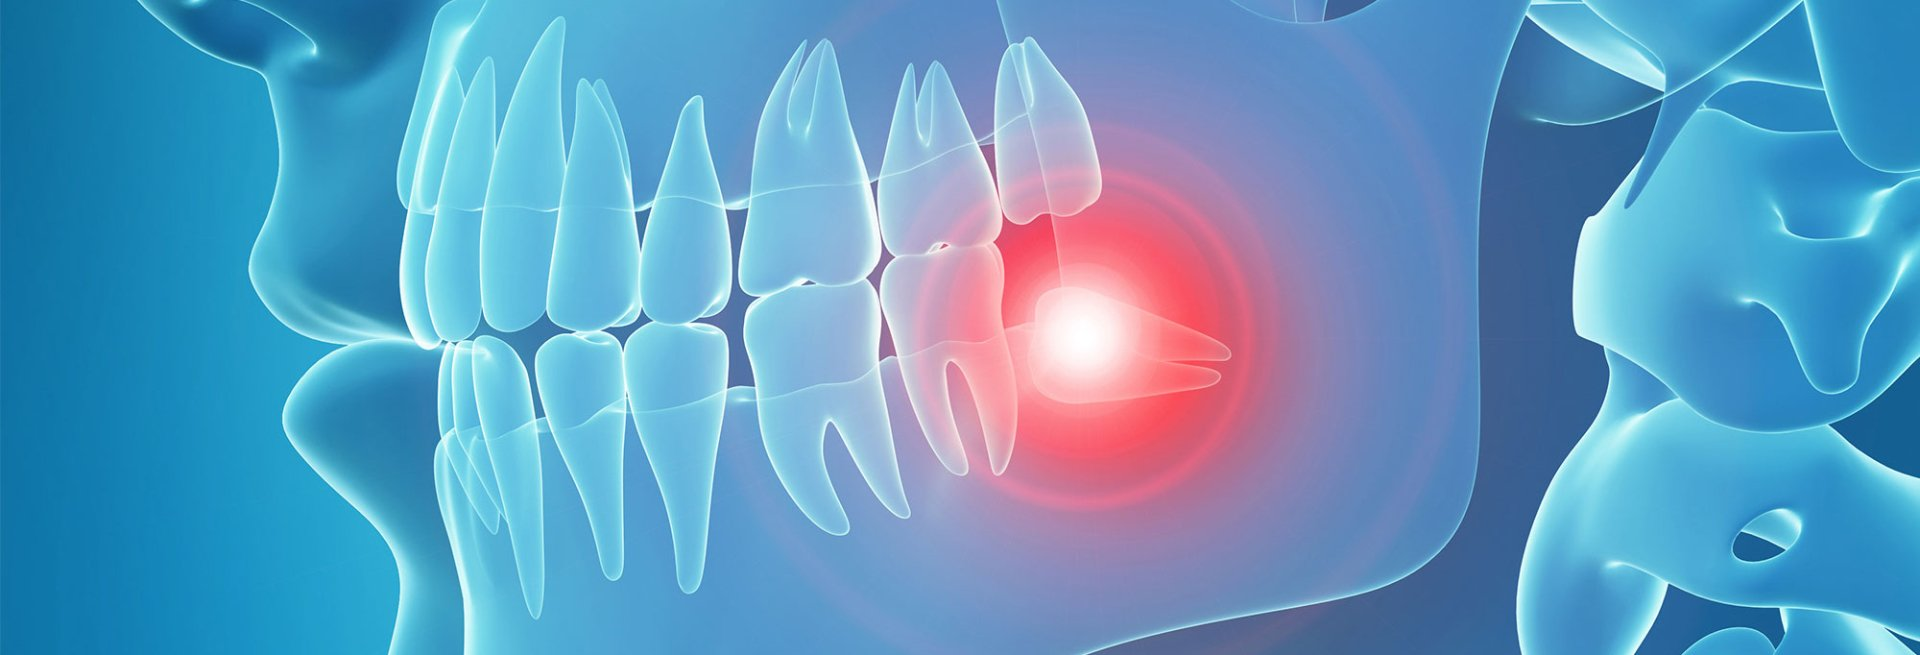 What Is Tmj And Can Braces Or Invisalign Fix It If My Jaw Hurts